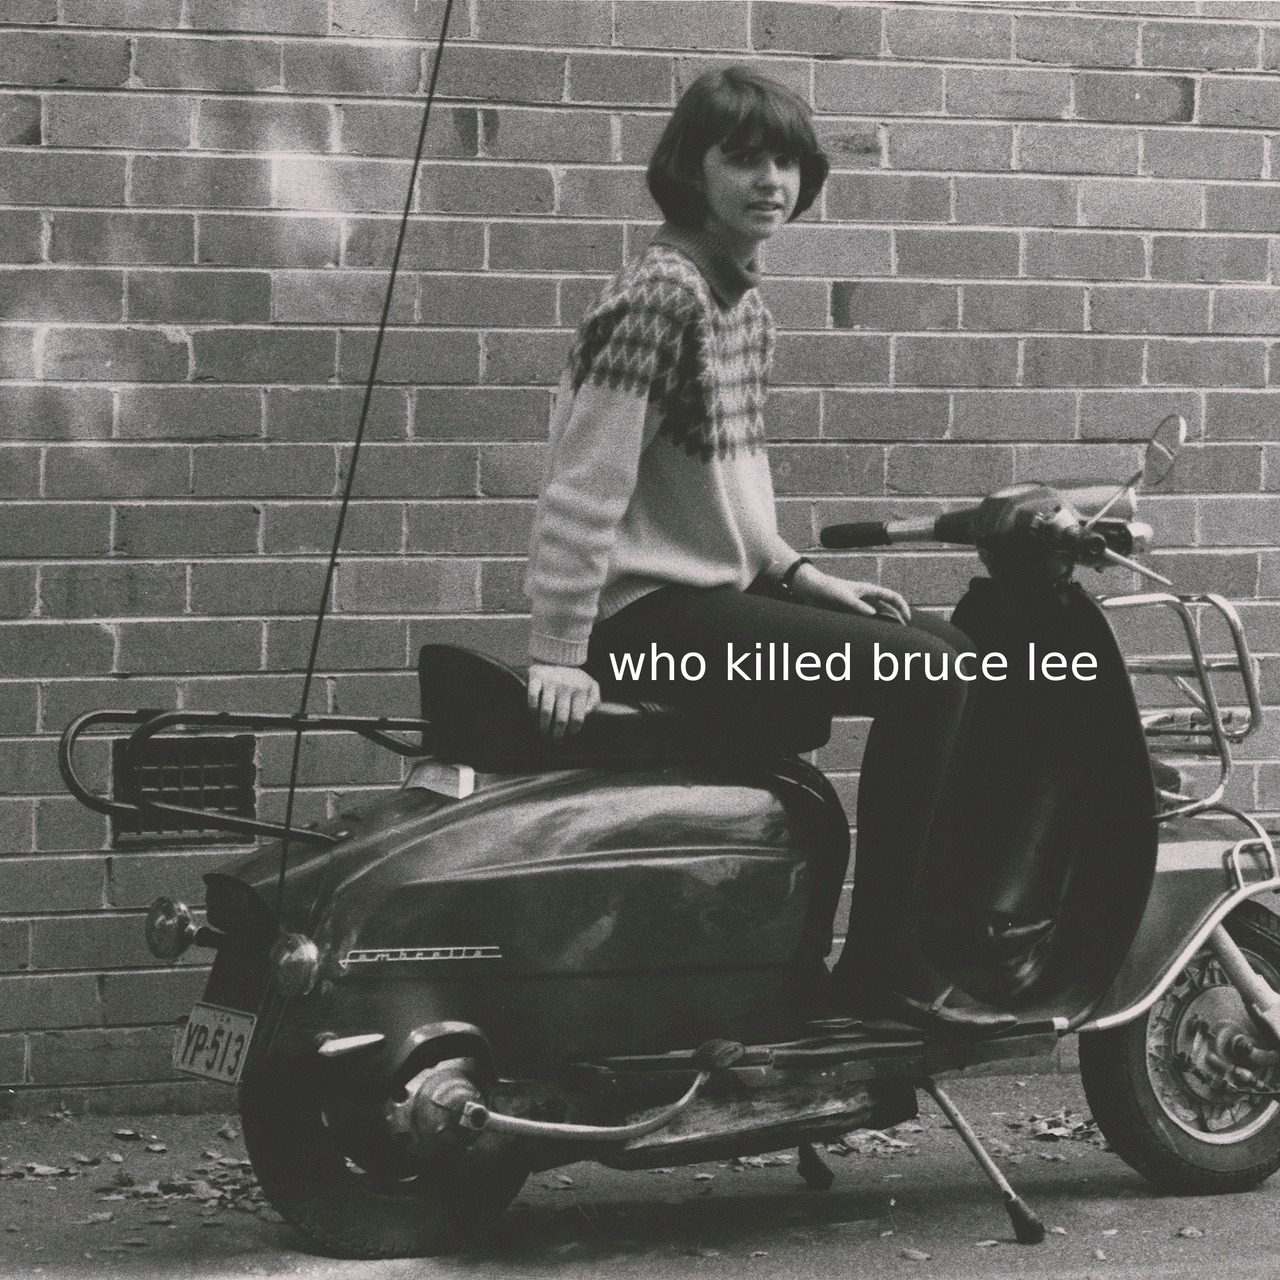 "soulpicnic:  WHO KILLED BRUCE LEE? B-SIDES FROM THE NEW WAVE ERA chuck d once said B-SIDE WINS AGAIN and dude was correct.  here's a playlist w/ a buncha ace b-sides taken from 7"" & 12"" singles released circa '78-'82.  although that's not to say the respective a-sides aren't class.  they are.  download, listen, enjoy, discover, relisten, etc the pop group / 3:38y pants / favorite sweaterdelta 5 / colourshriekback / tiny birdseinwegexistenz / step your feedkleenex / hedi's headesg / the beatau pairs / pretty boysgirls at our best / warm girlsgrauzone / wutendes glaspulsallama / ungawa pt 2 (way out guaiana)bush tetras / you taste like the tropicsa certain ratio / blown awayglaxo babies / who killed bruce lee? DOWNLOAD"